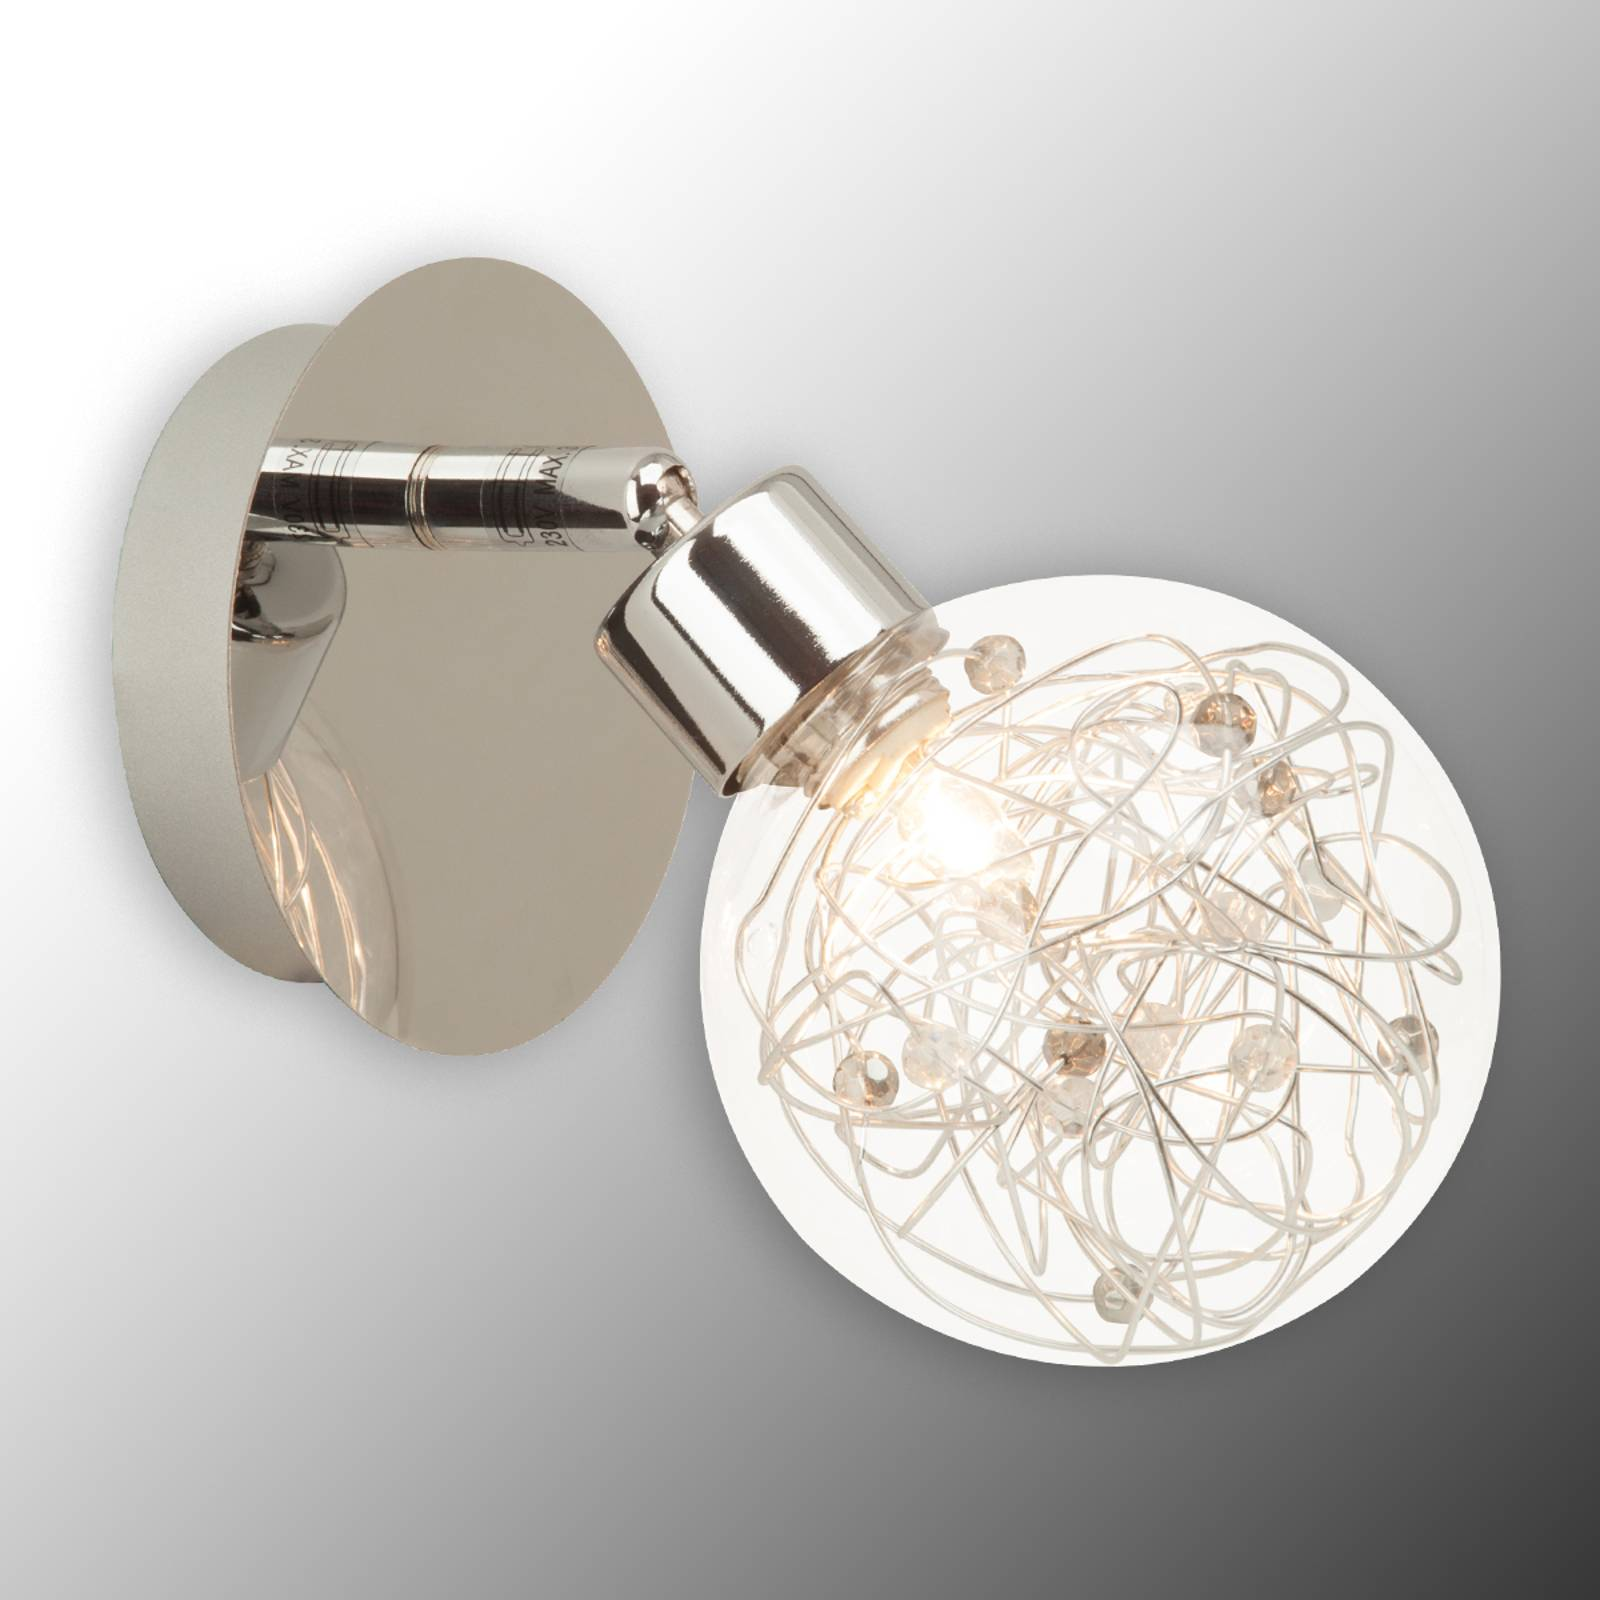 Effective wall light Joya from Brilliant